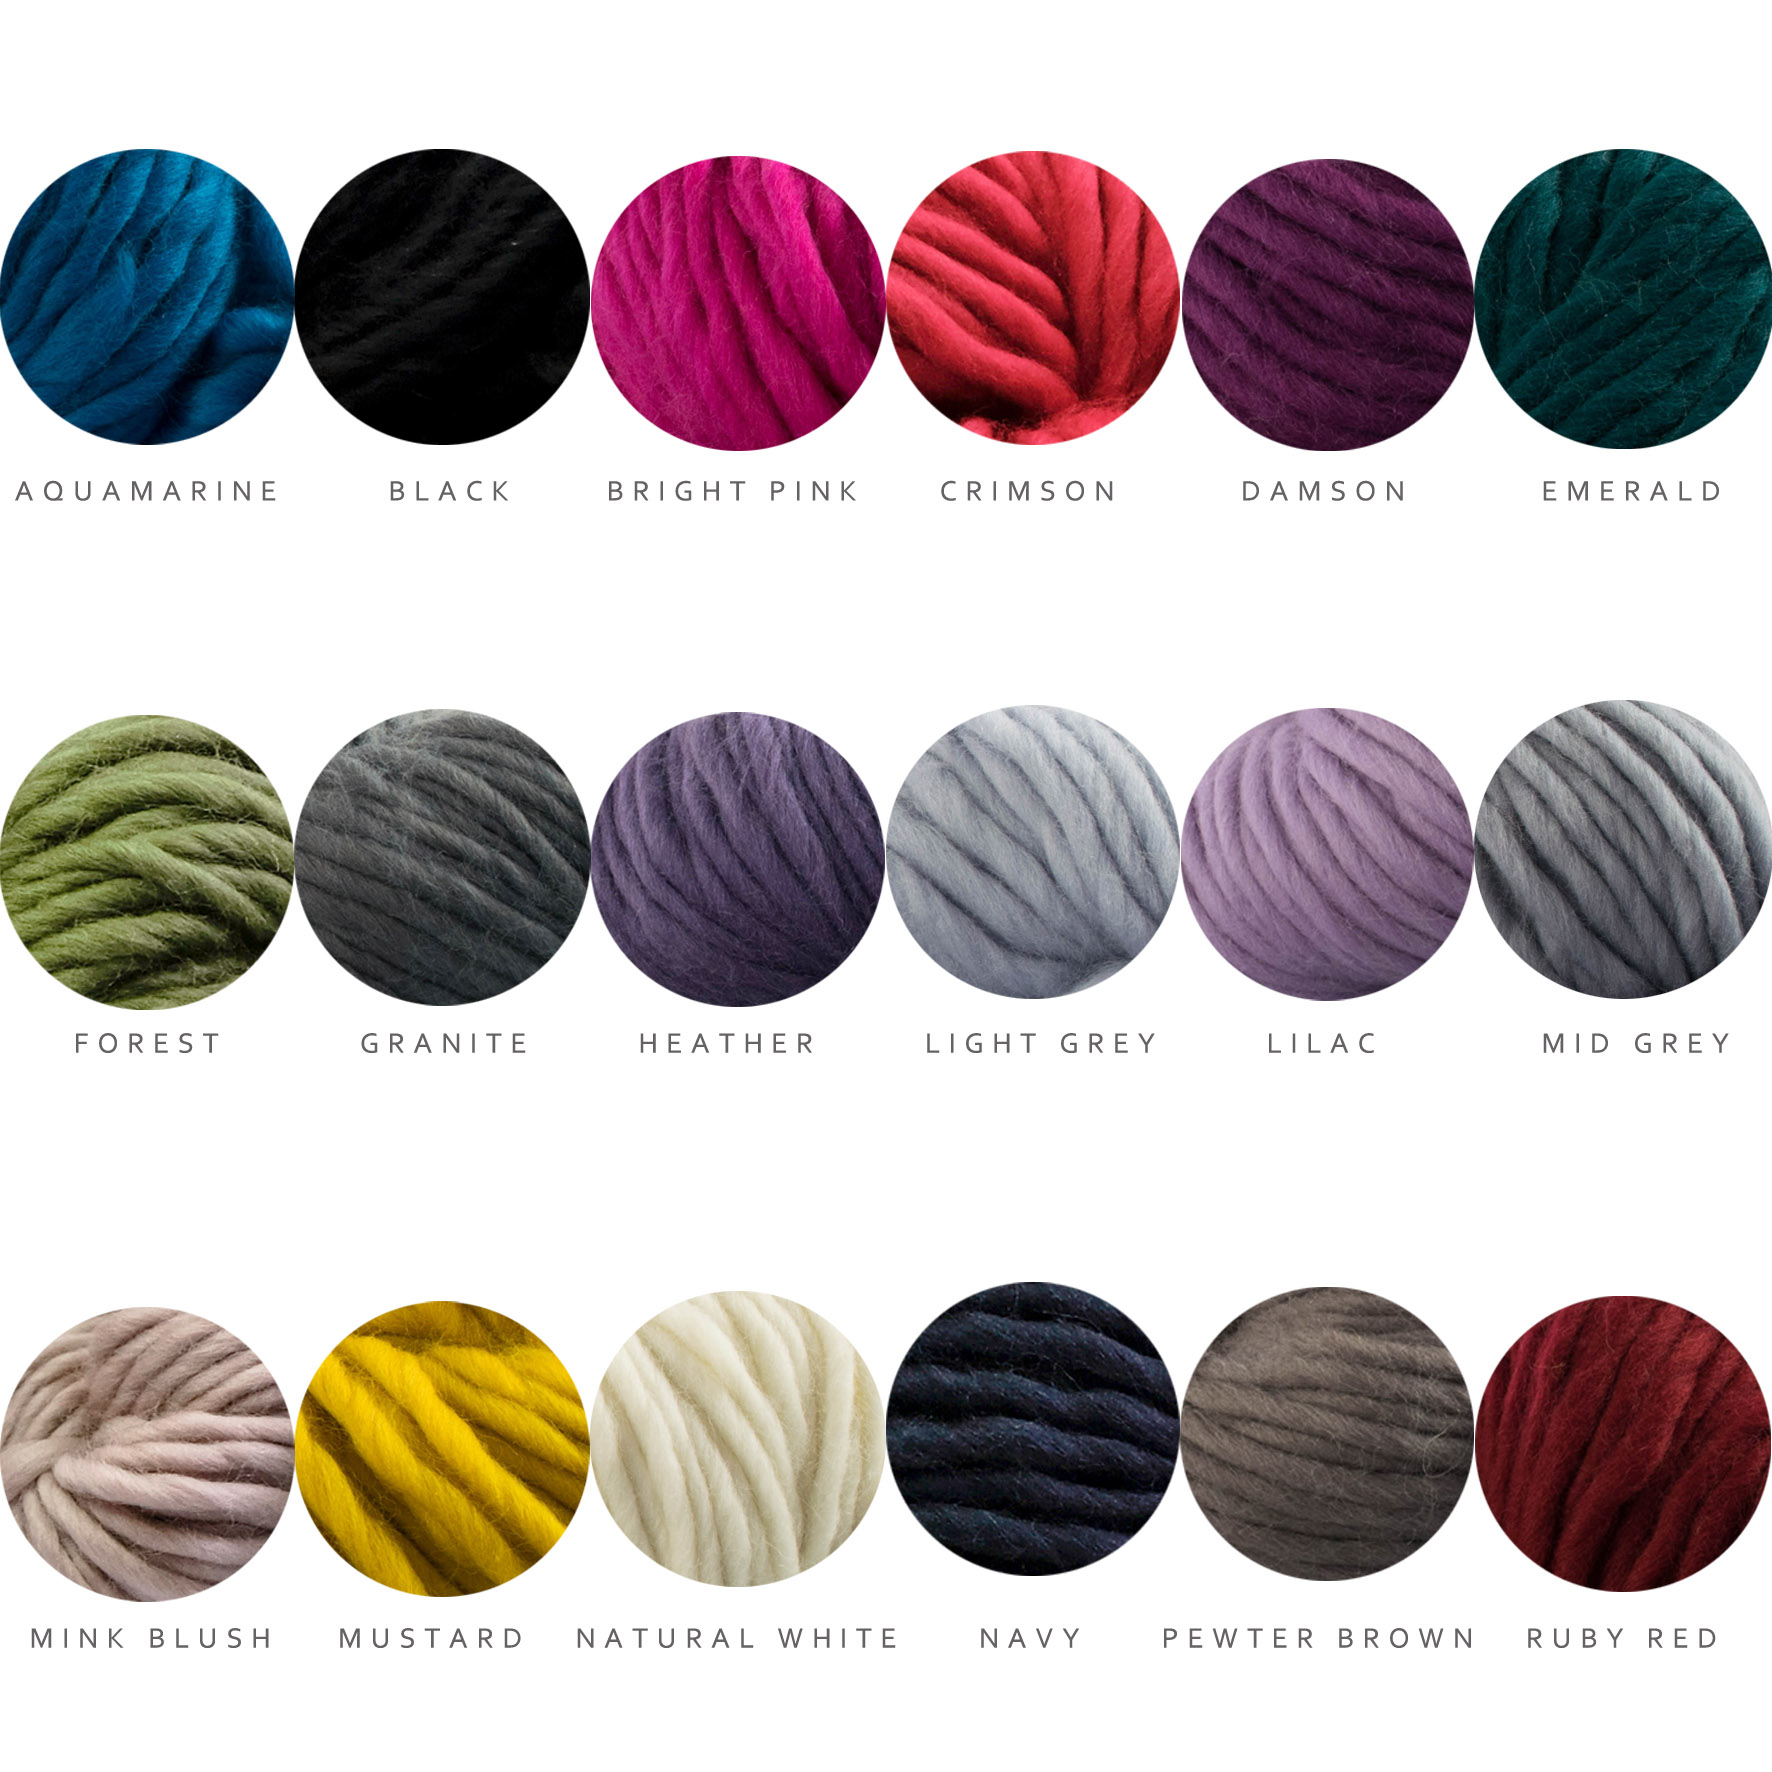 Colours - All the Super Chunky Knit Kits are available in any of these colours. The hardest part is always choosing your favourite! If you get a kit with a colour pop you have a choice of the following 8 colours for the pop -Aquamarine, Bright Pink, Crimson, Forest, Lilac, Mid Grey, Mink Blush, Mustard.